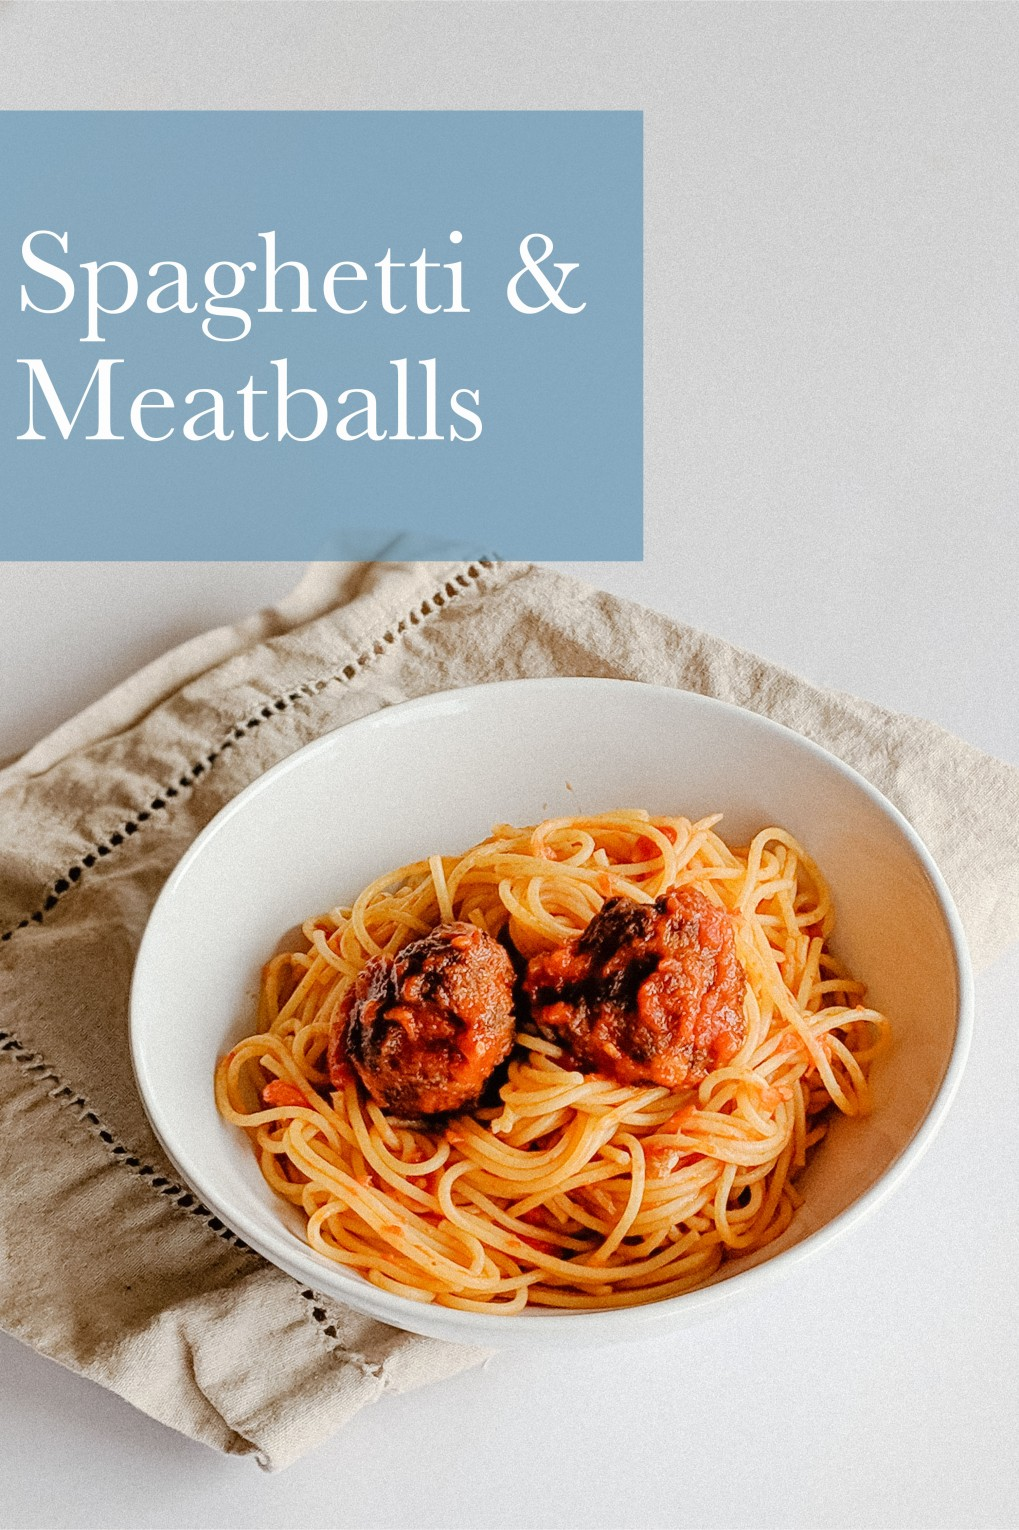 Spaghetti and Meatballs - Yum! Classic comfort food!